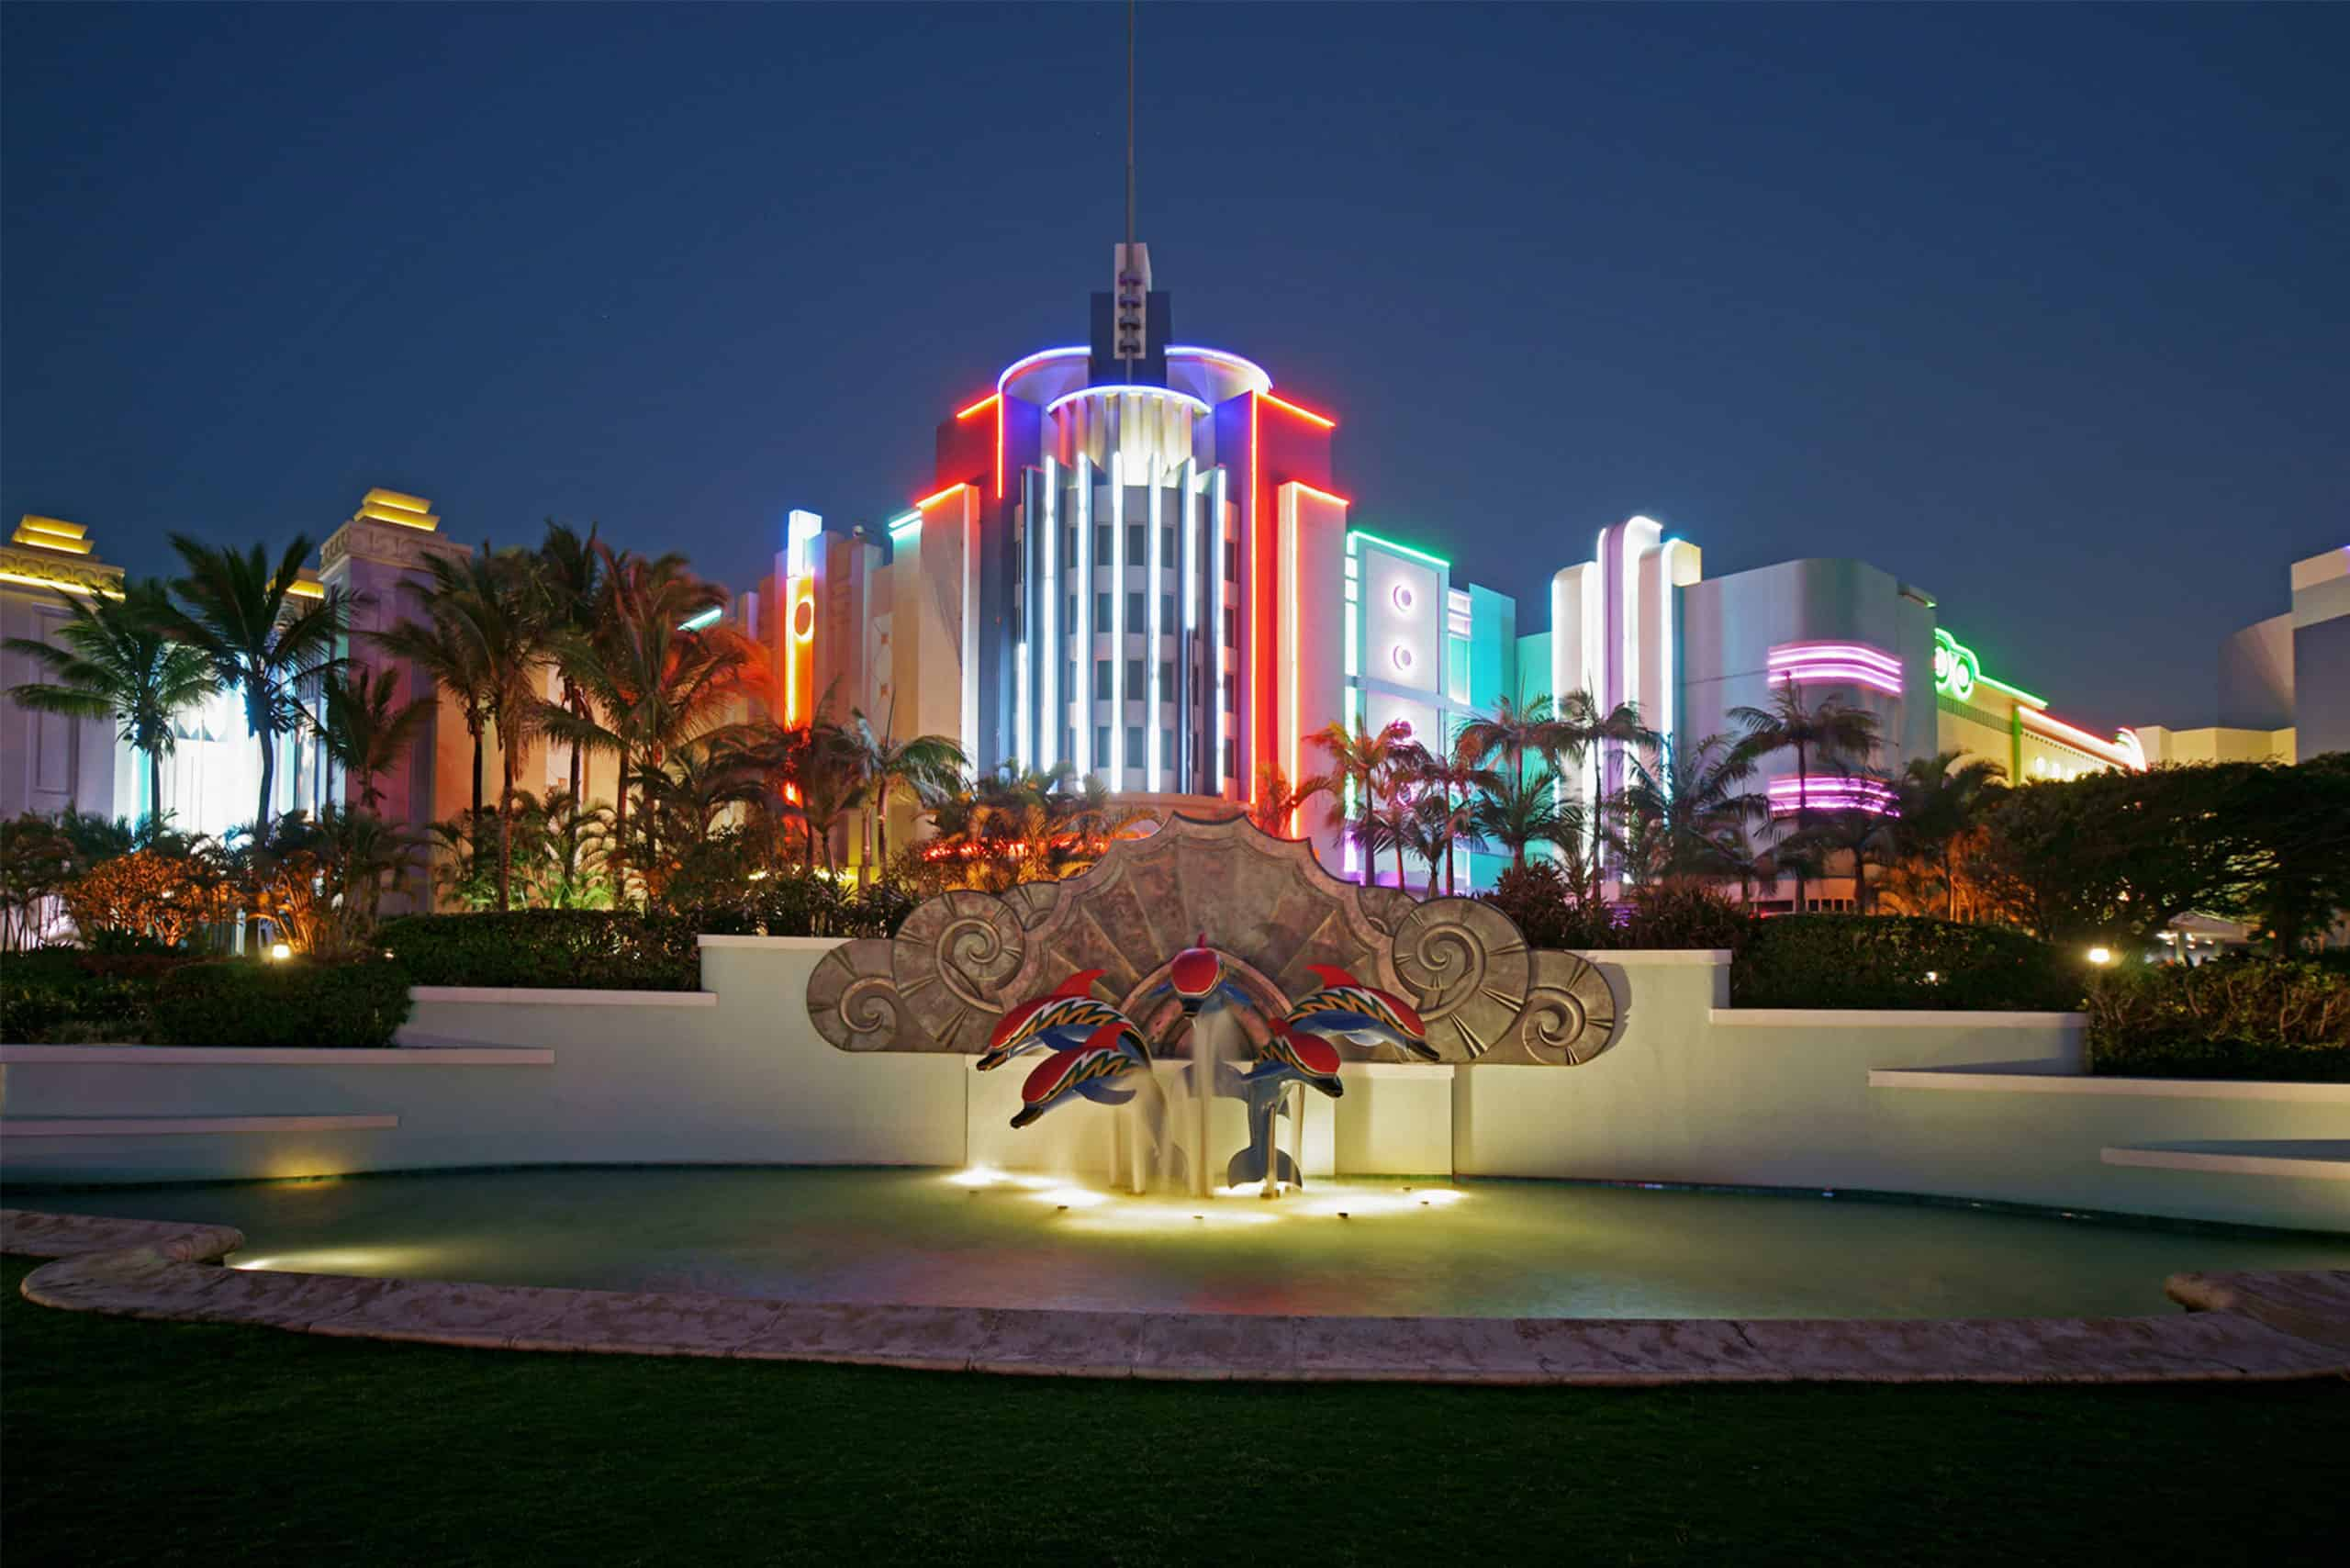 Suncoast casino exterior lights at night